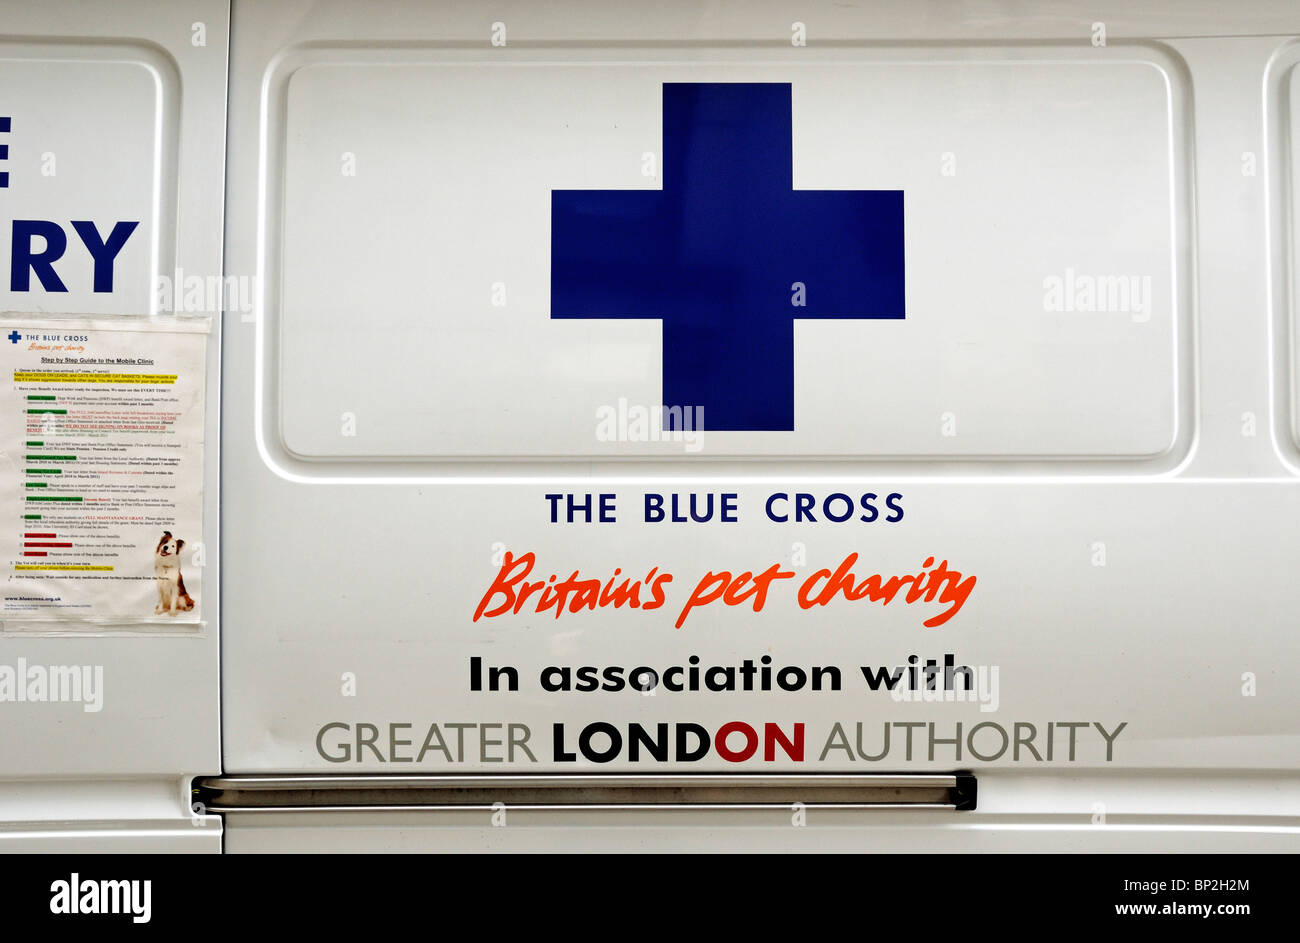 The Blue Cross sign on side of mobile van - Stock Image